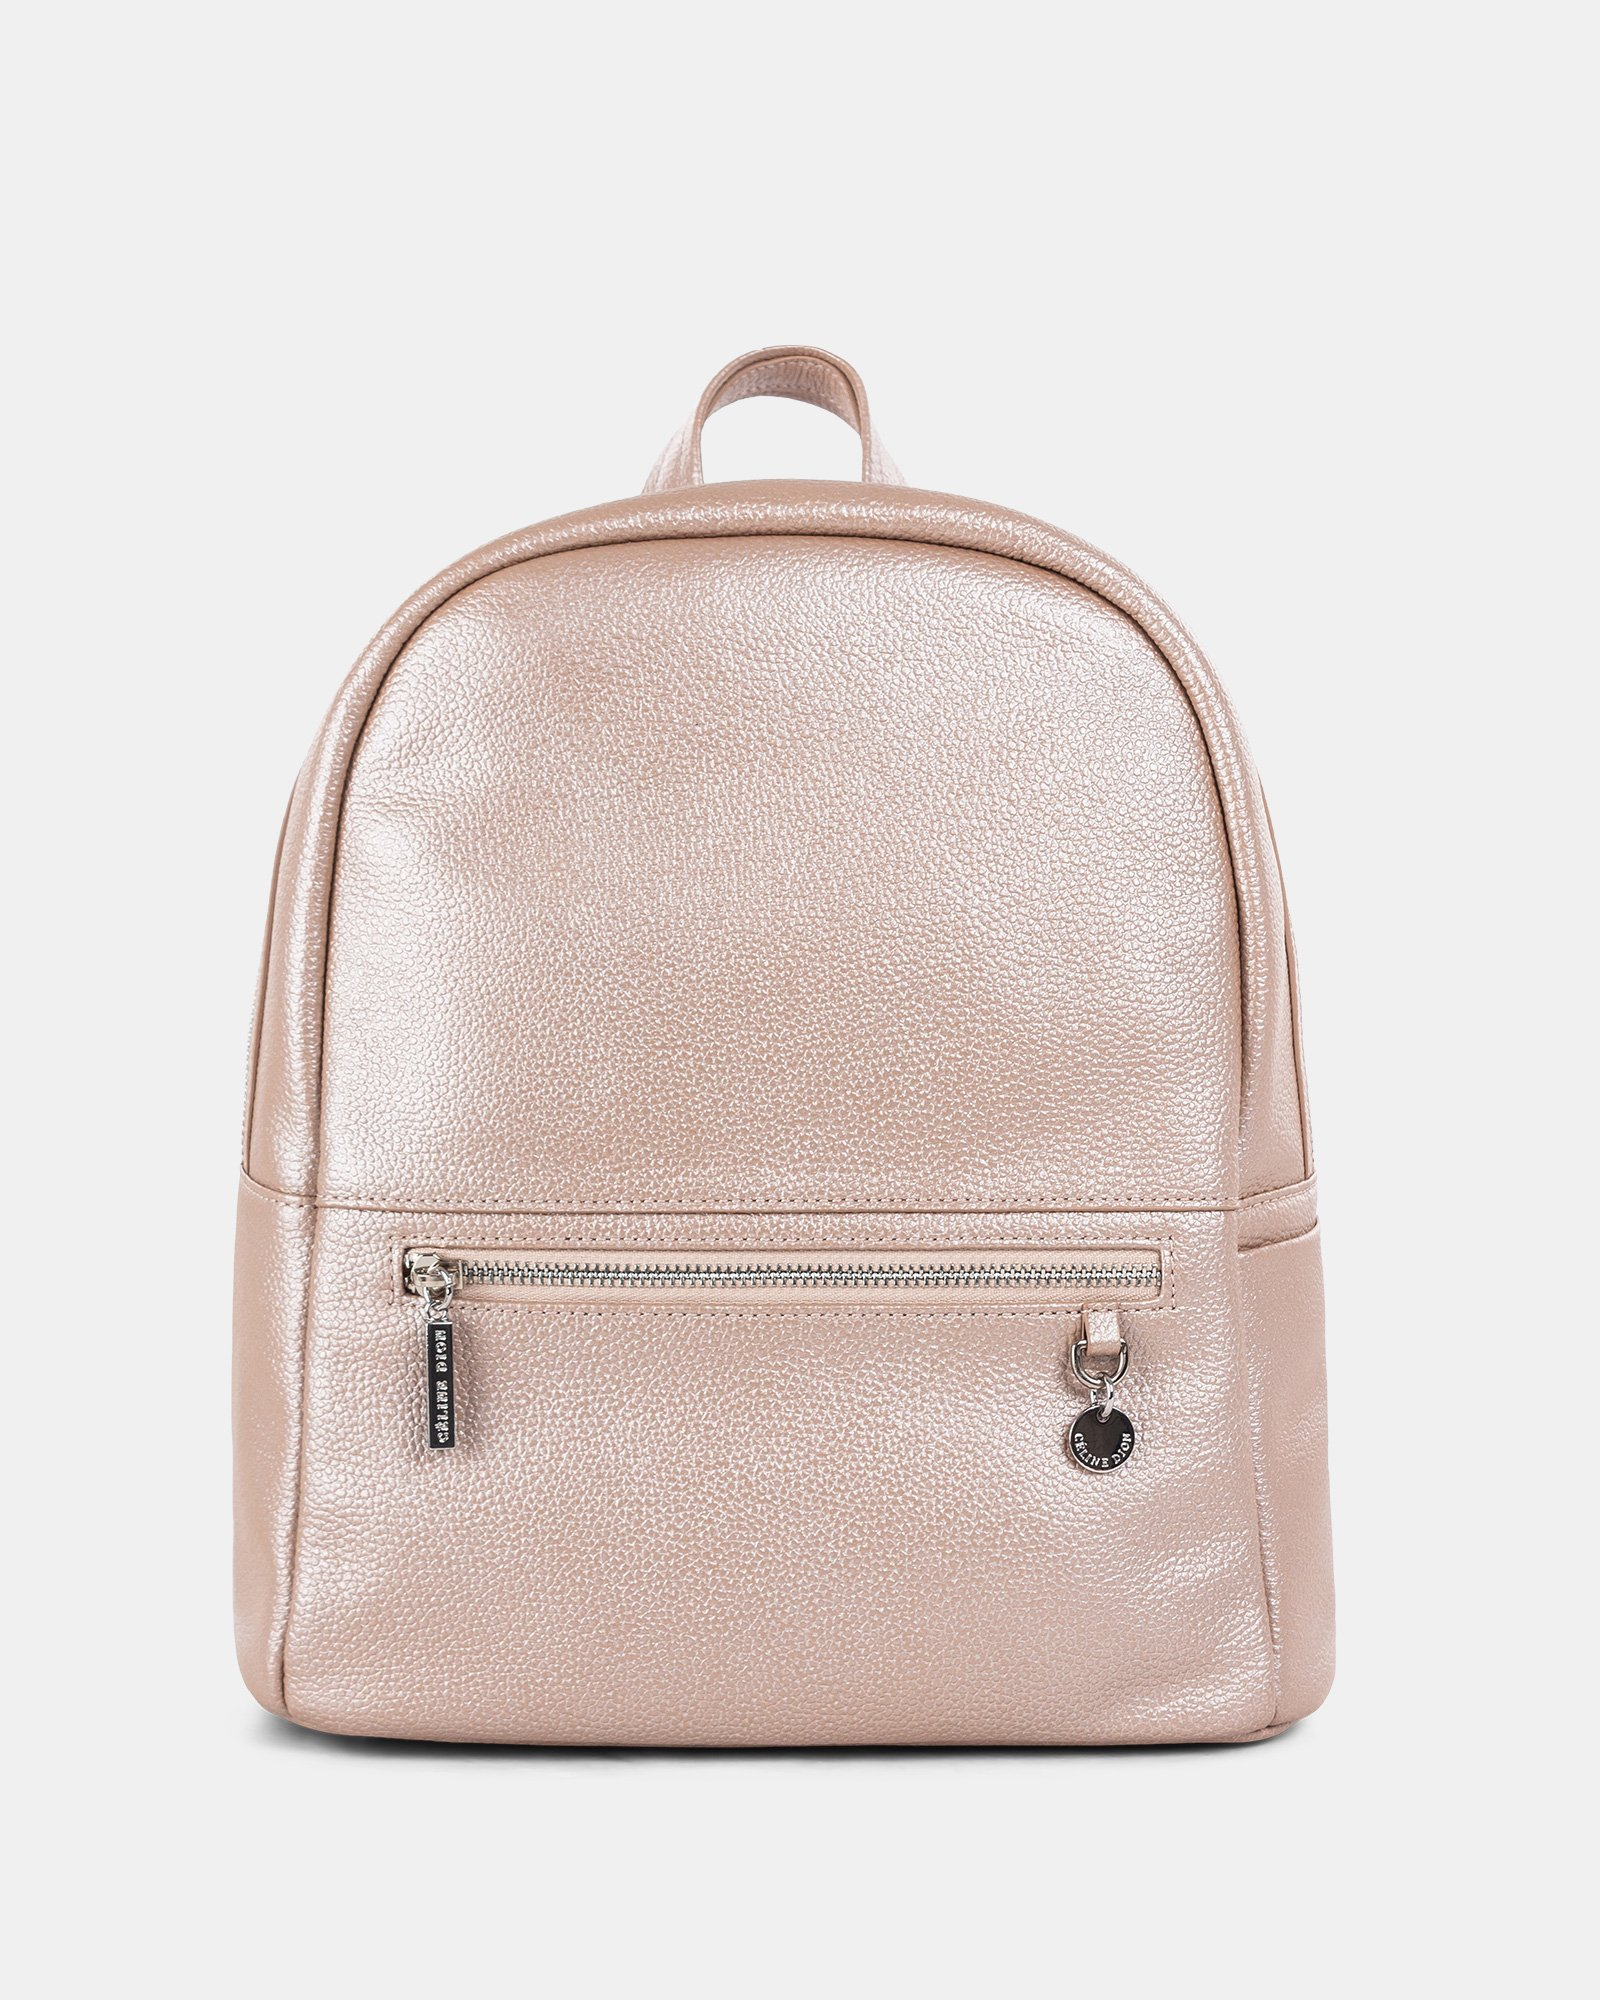 FALSETTO - LEATHER BACKPACK with RFID protection - ROSEGOLD - Céline Dion - Zoom